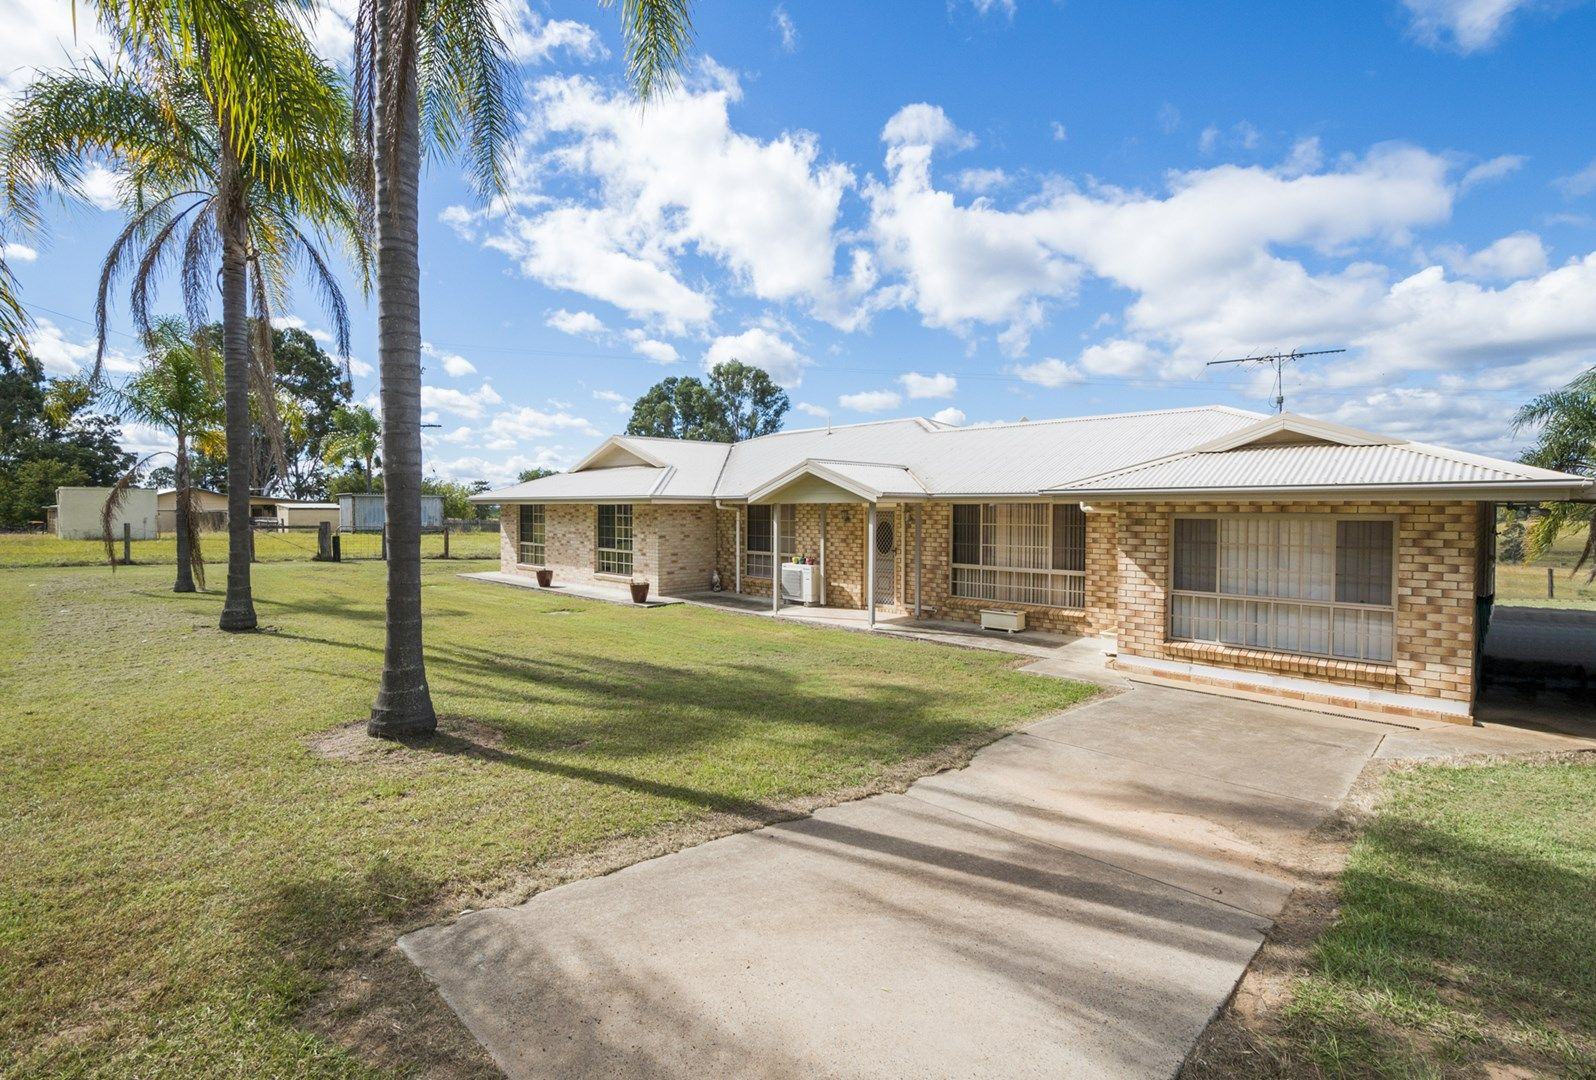 499 LOWER KANGAROO CREEK ROAD, Coutts Crossing NSW 2460, Image 0